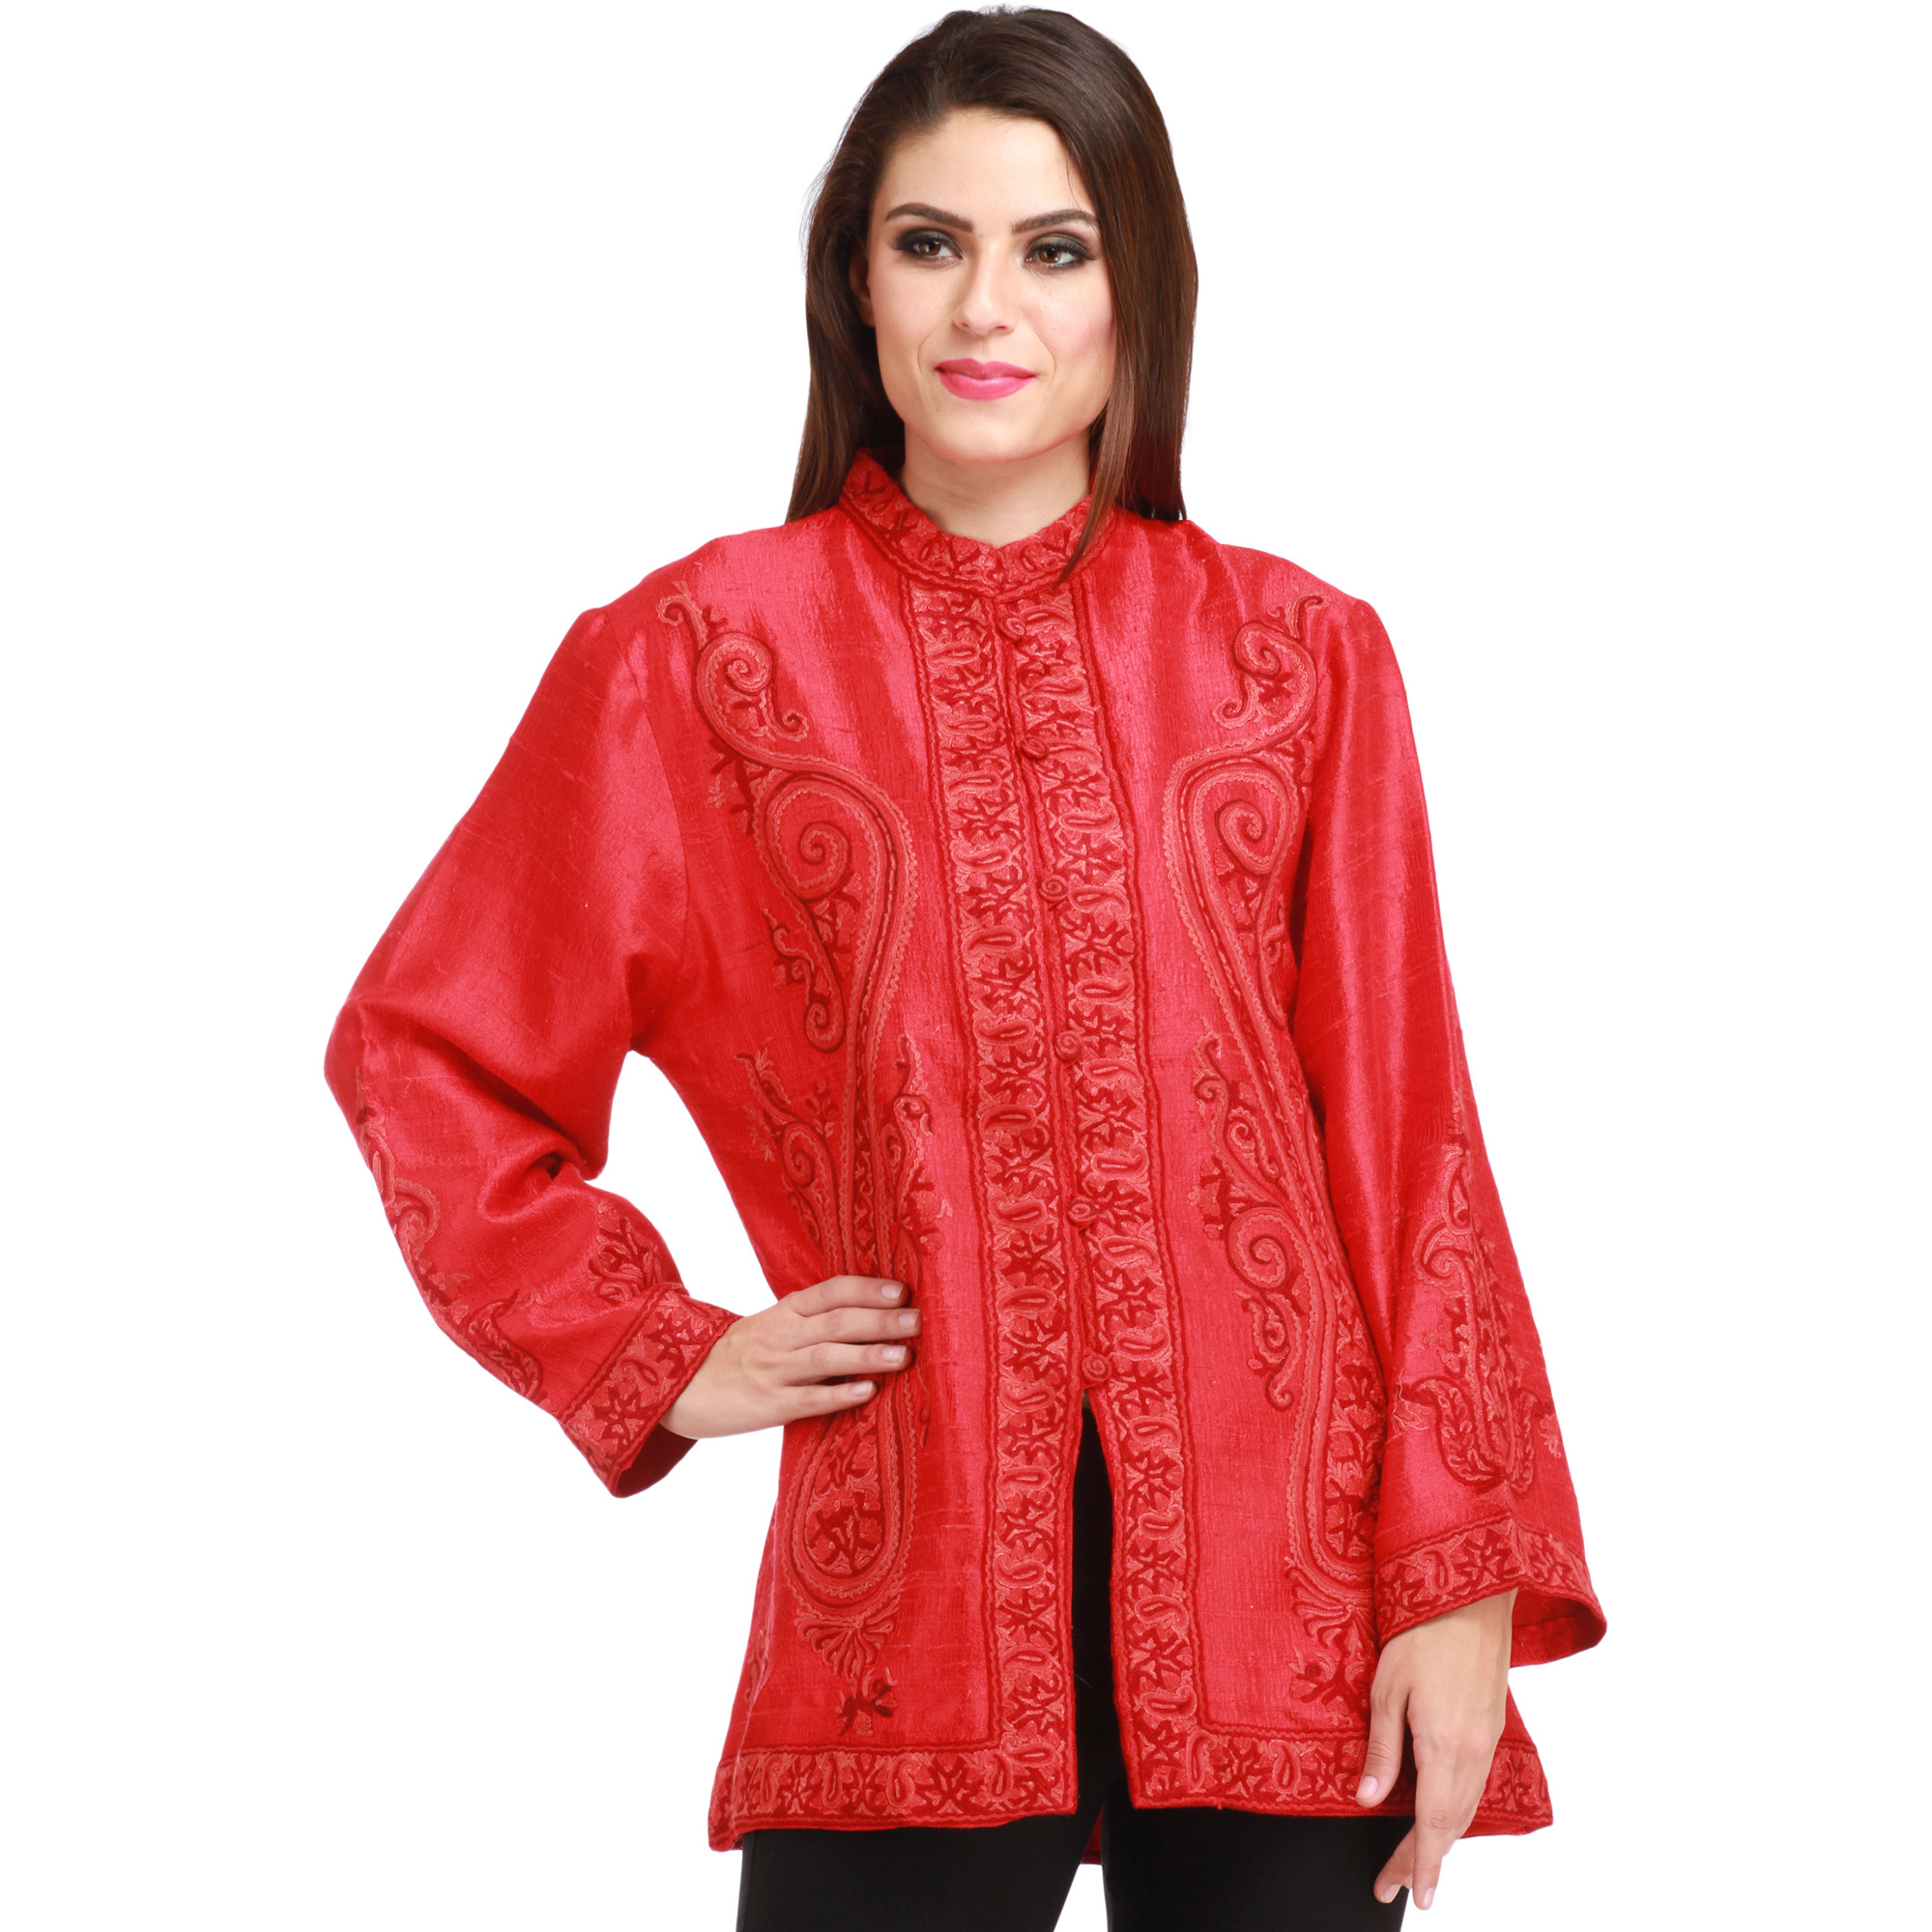 Tomato-Red Kashmiri Jacket with Ari Hand-Embroidered Paisleys